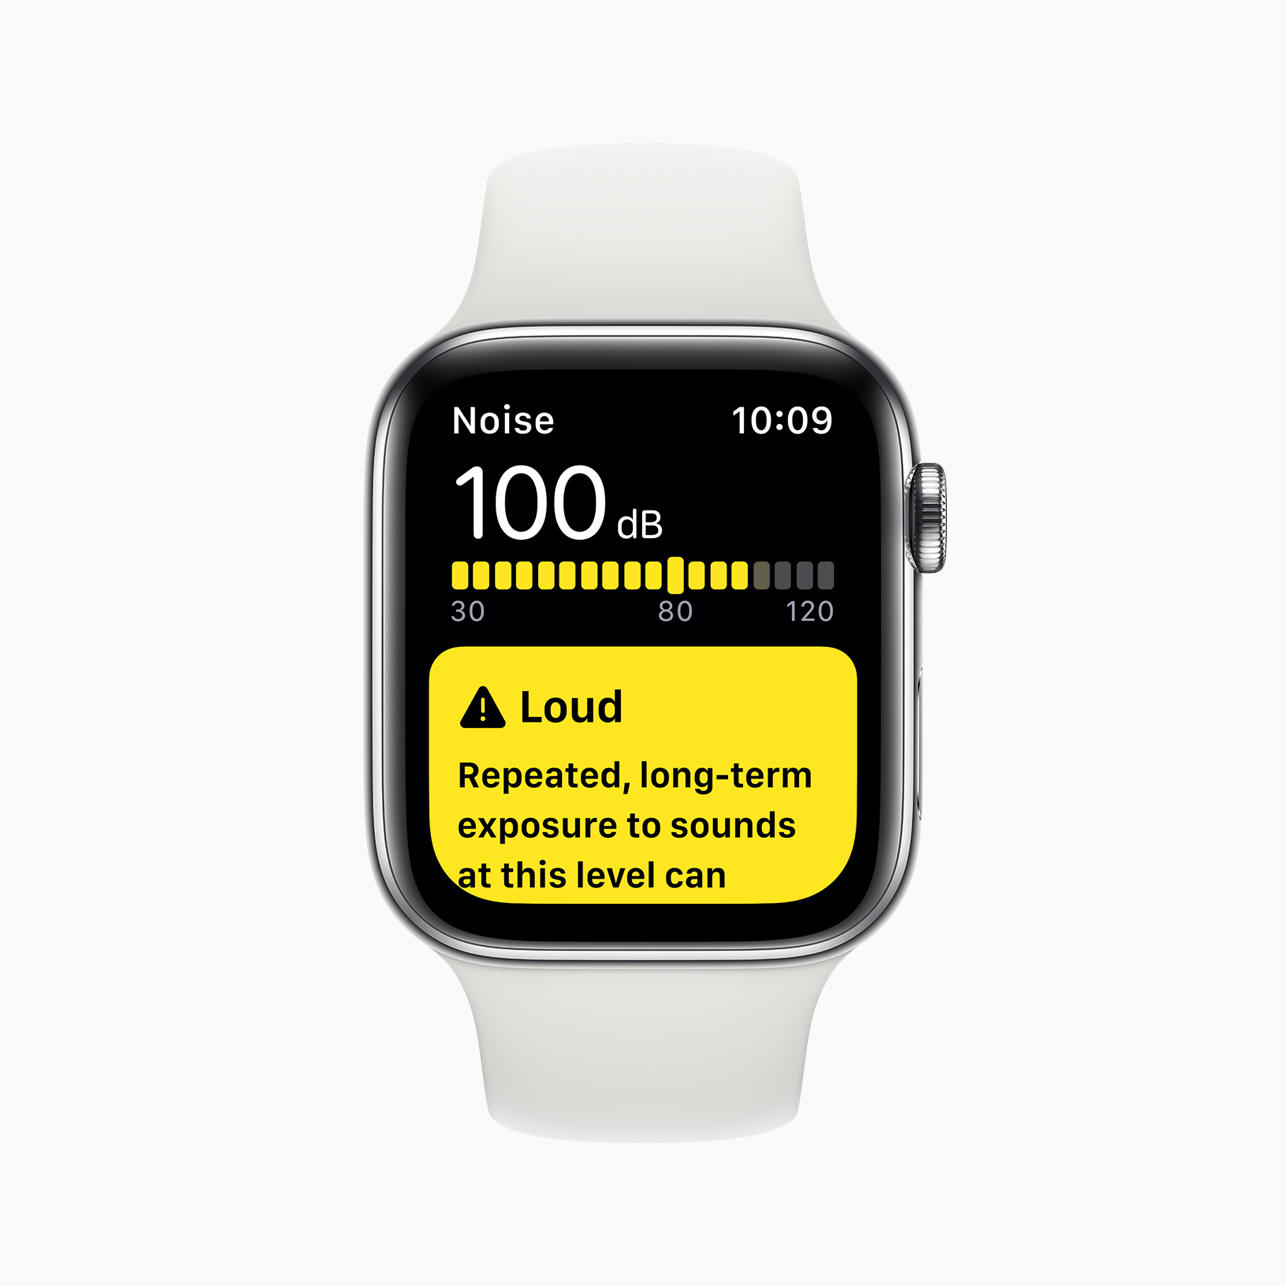 apple-watch-series-5-noise-app-screen-091019